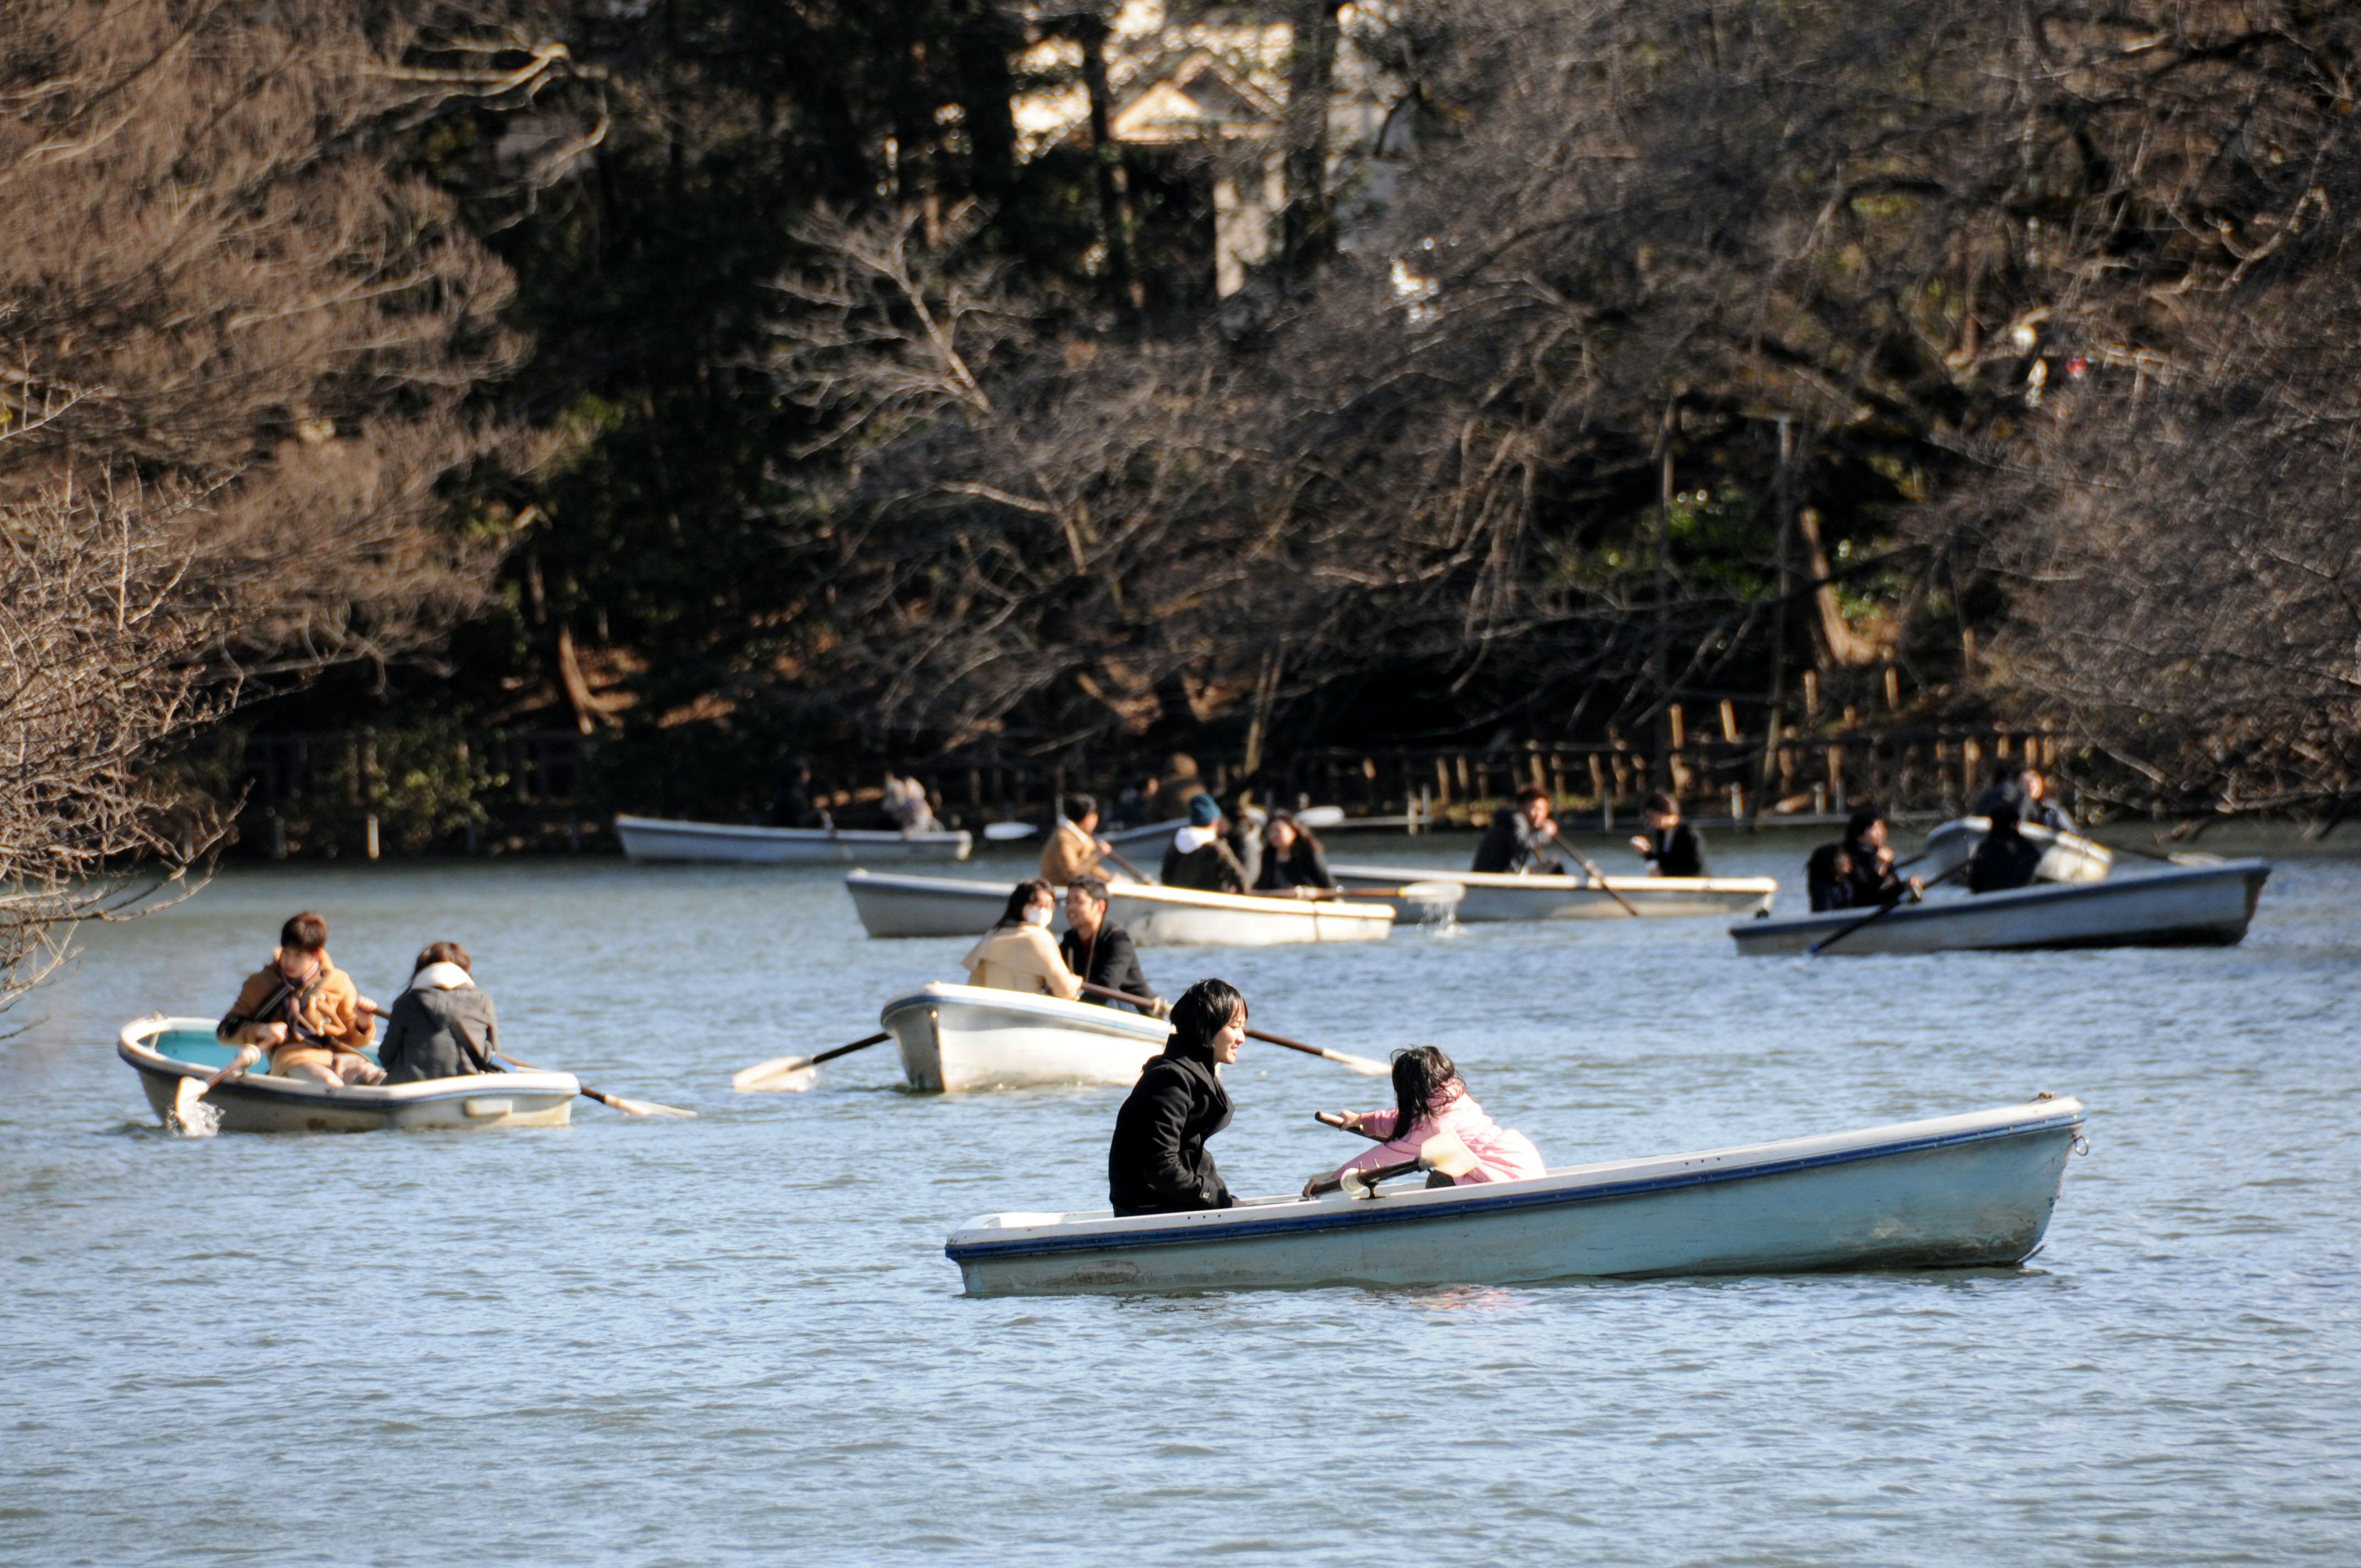 Visitors to Inokashira Park in the city of Musashino, Tokyo, enjoy a boat ride.